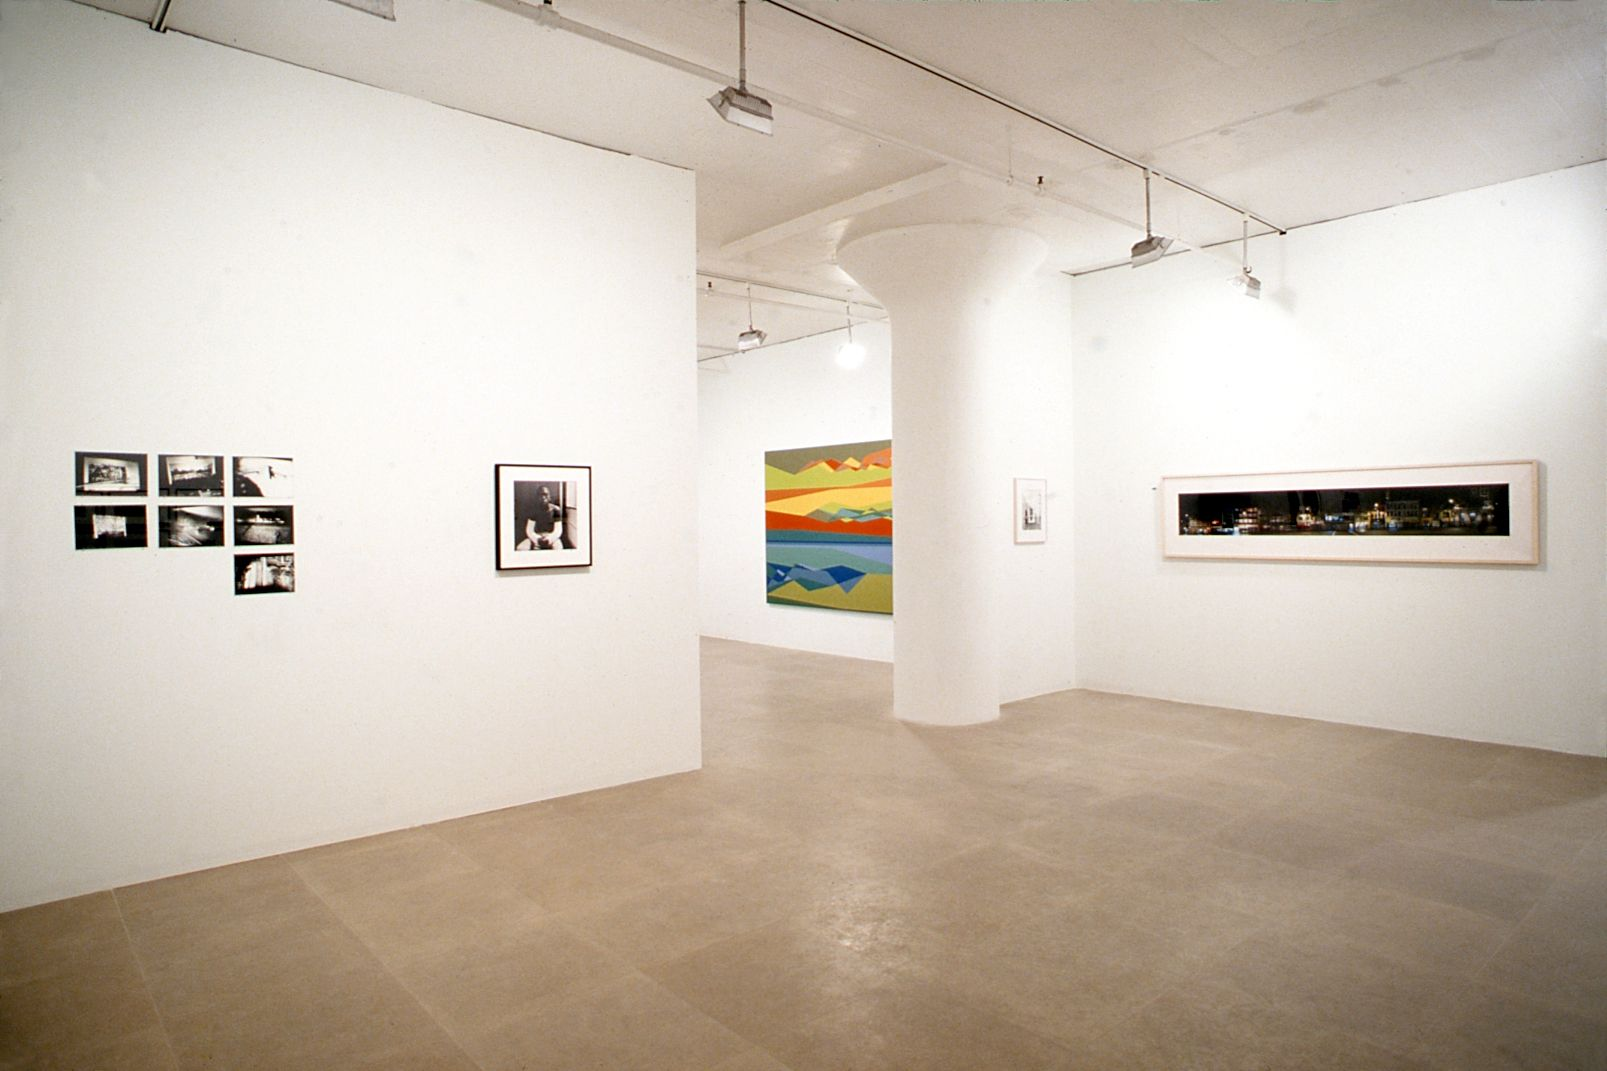 Installation view, Pictures, Greene Naftali, New York, 2002